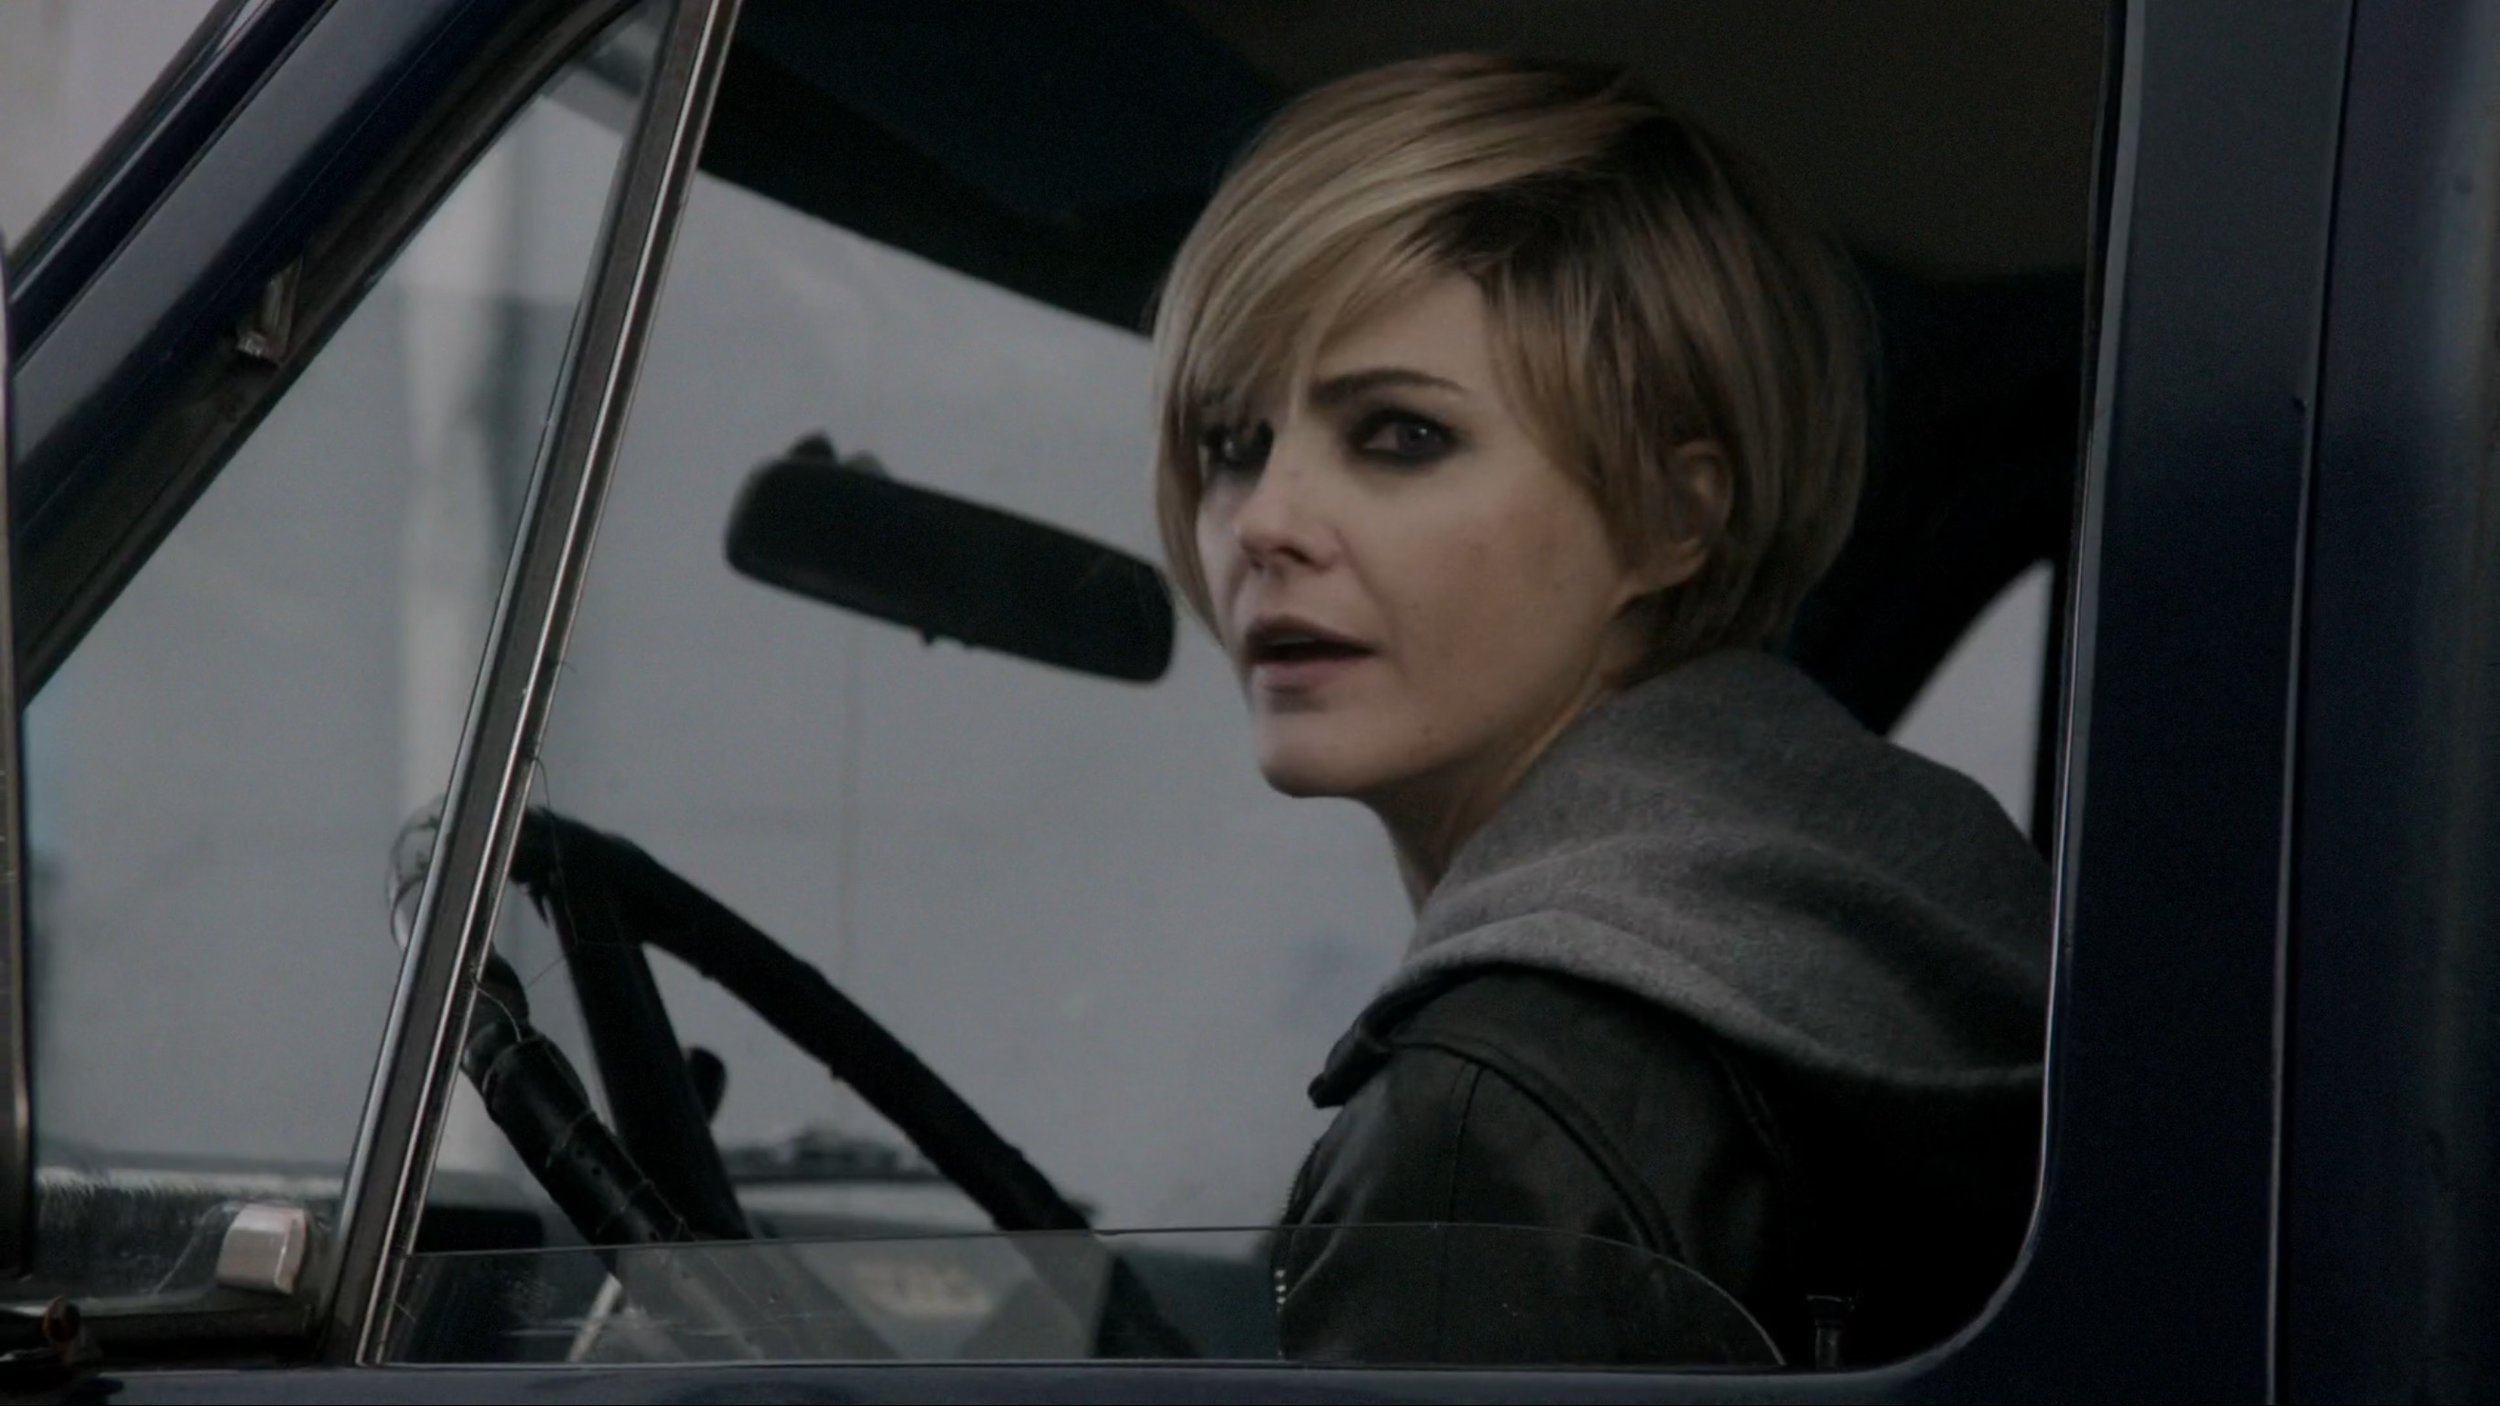 Pixie cut, or tongue-in-cheek Felicity reference?